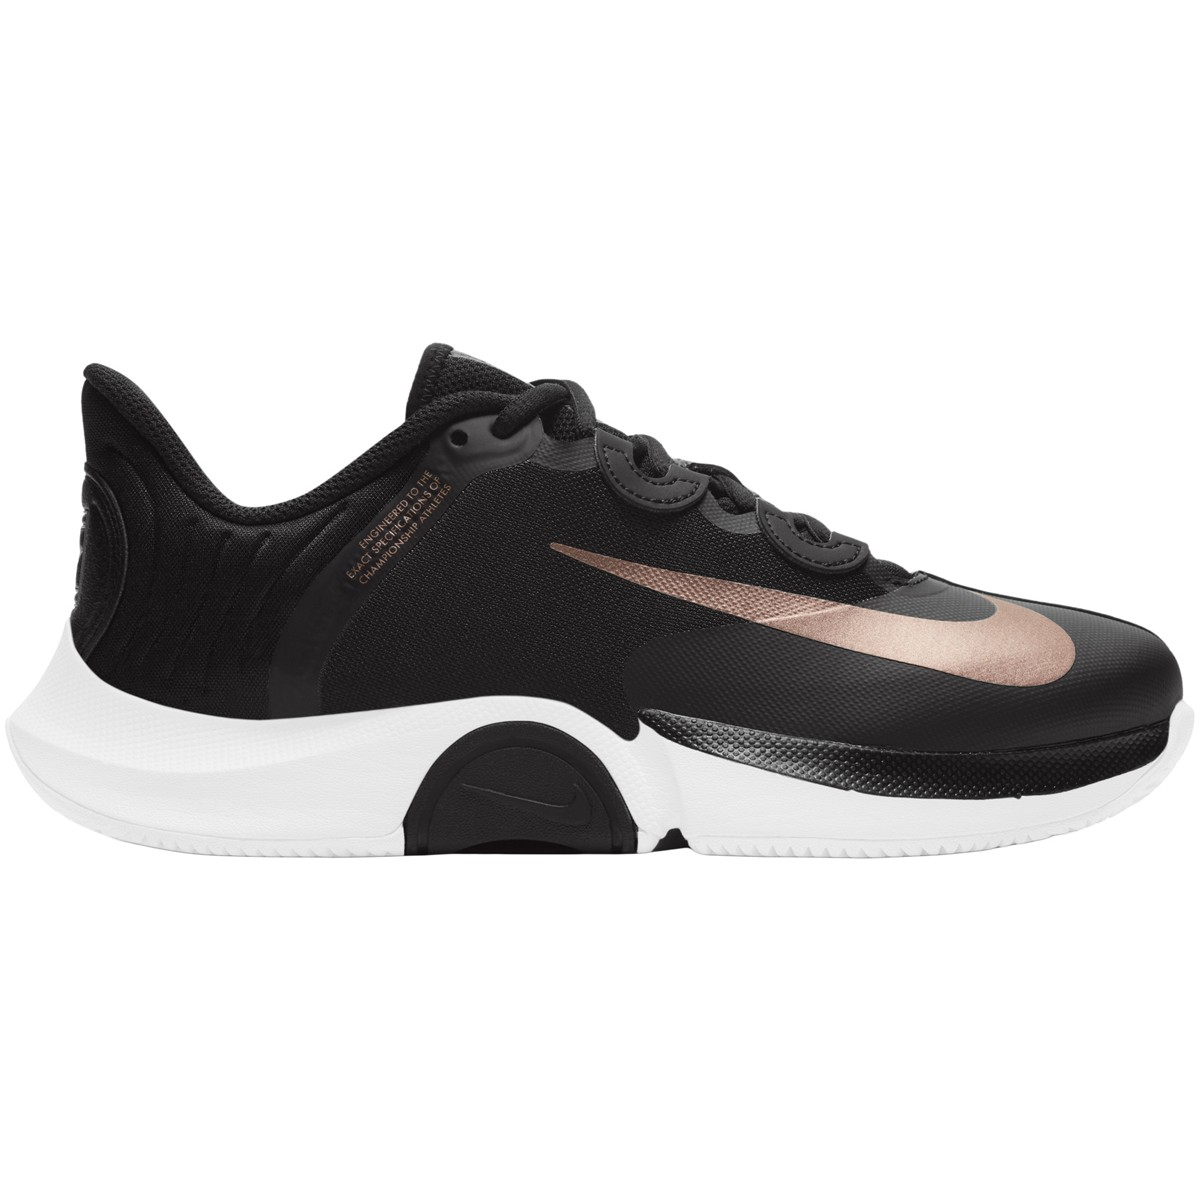 Chaussures Nike Femme Air Zoom GP Turbo Toutes Surfaces